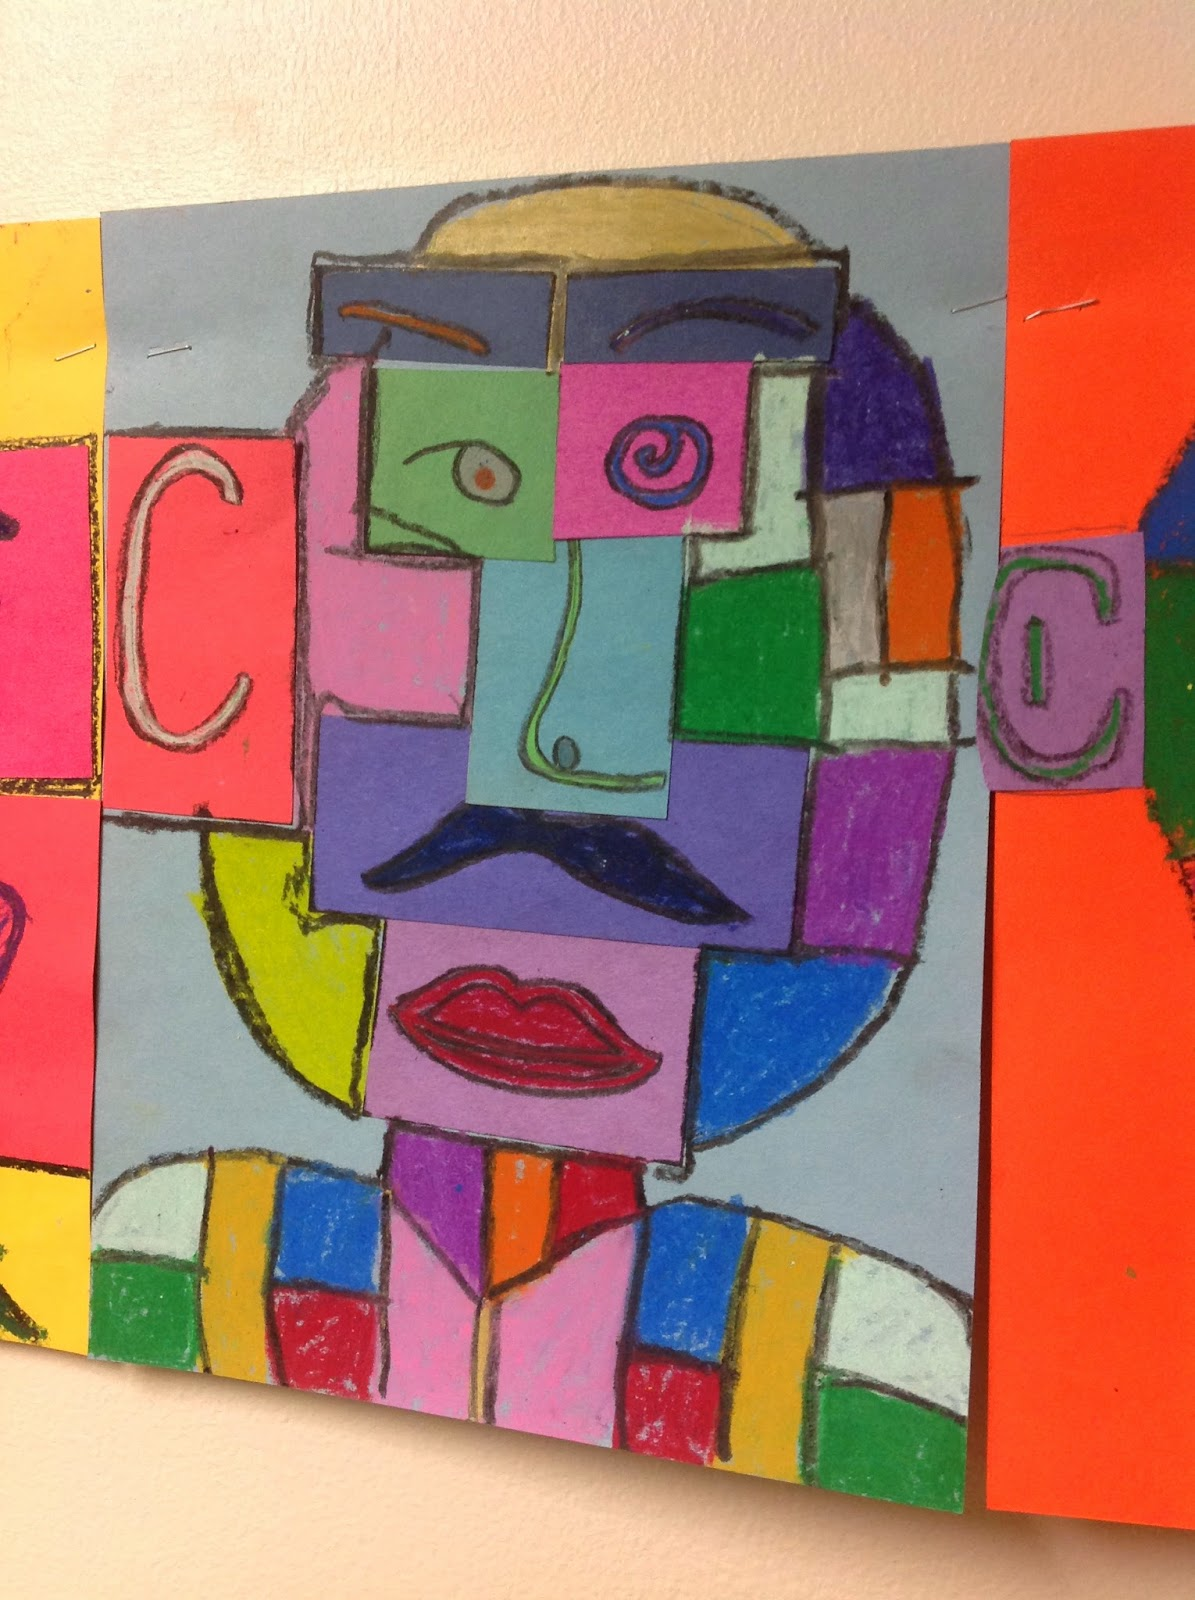 The Artsy Fartsy Art Room Cubism With 4th And 5th